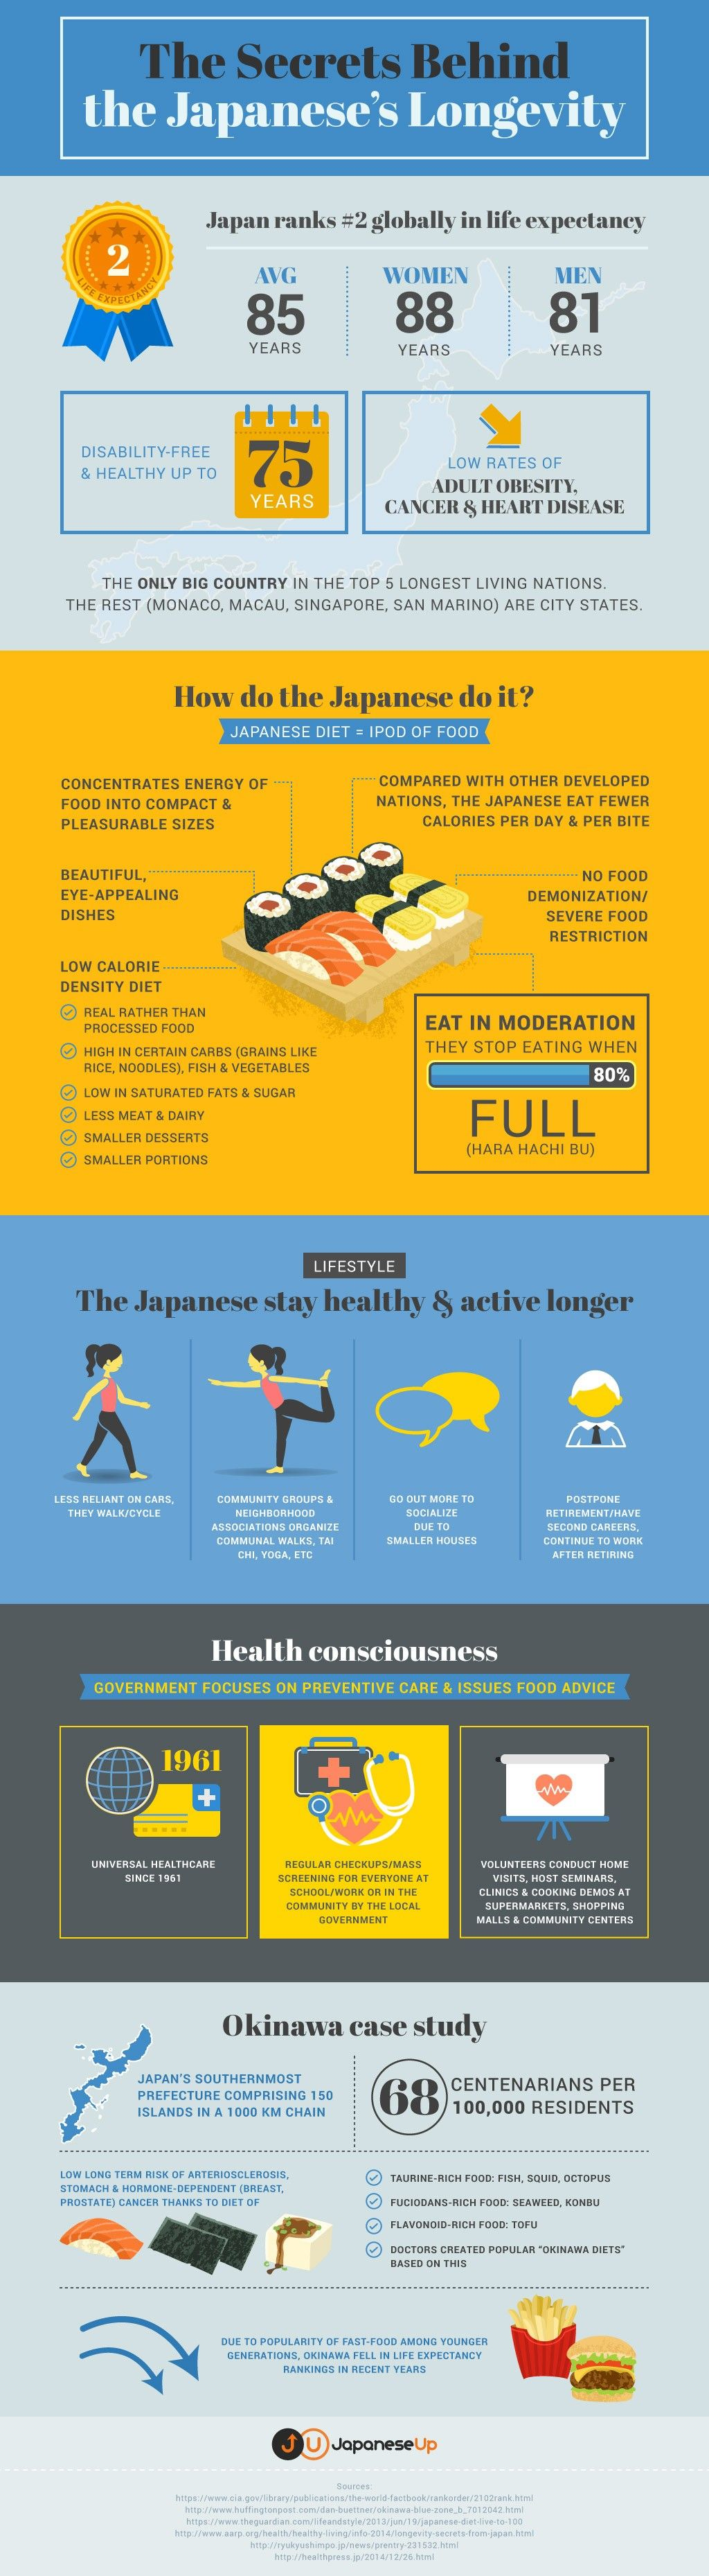 The Secrets Behind the Japanese's Longevity